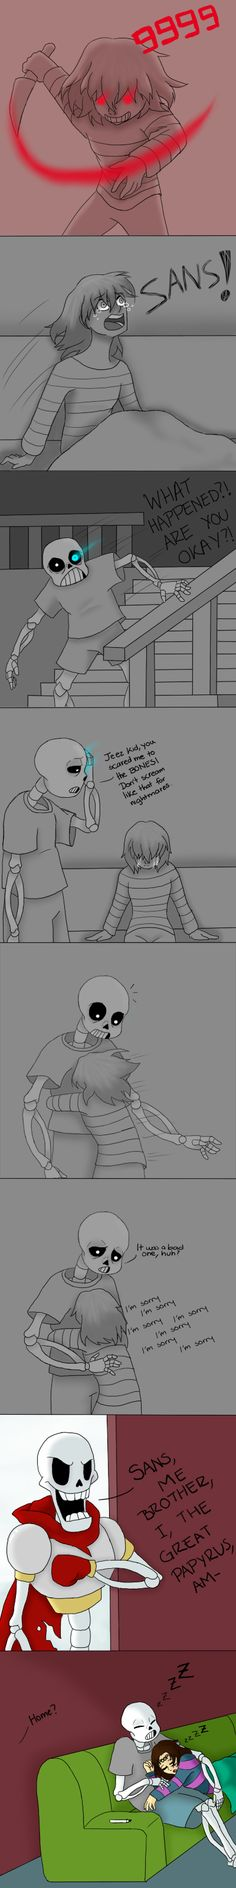 Sans and Frisk (Genocide run spoilers) by MichPajamaArtist.deviantart.com on @DeviantArt